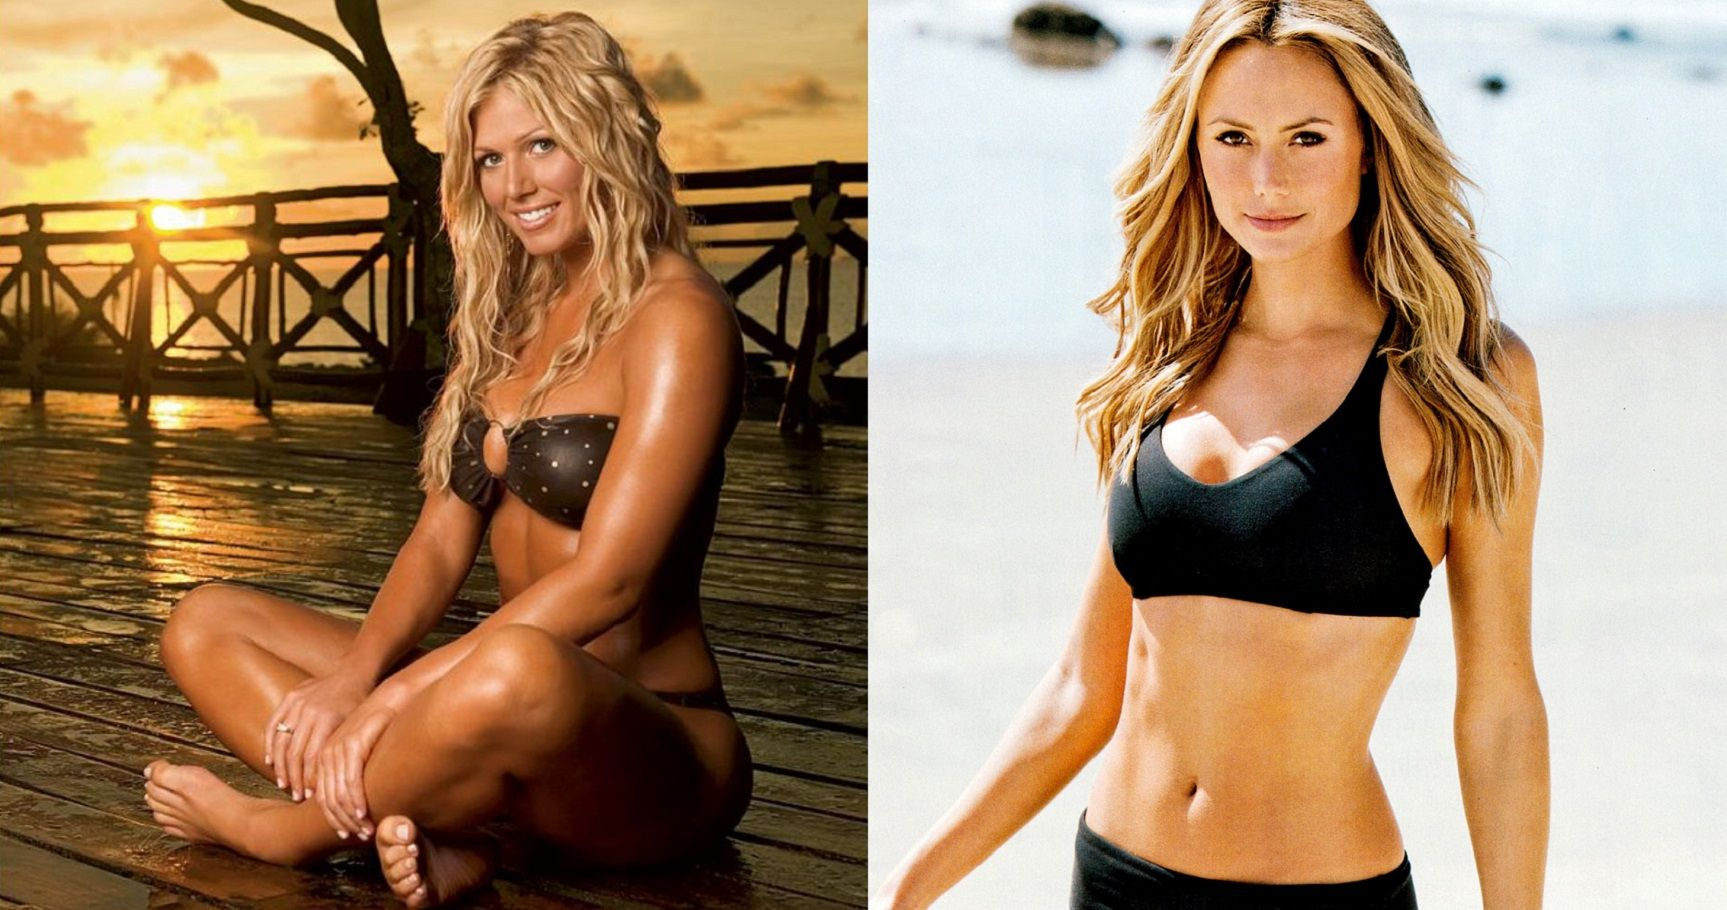 The 20 Hottest Women In WCW History